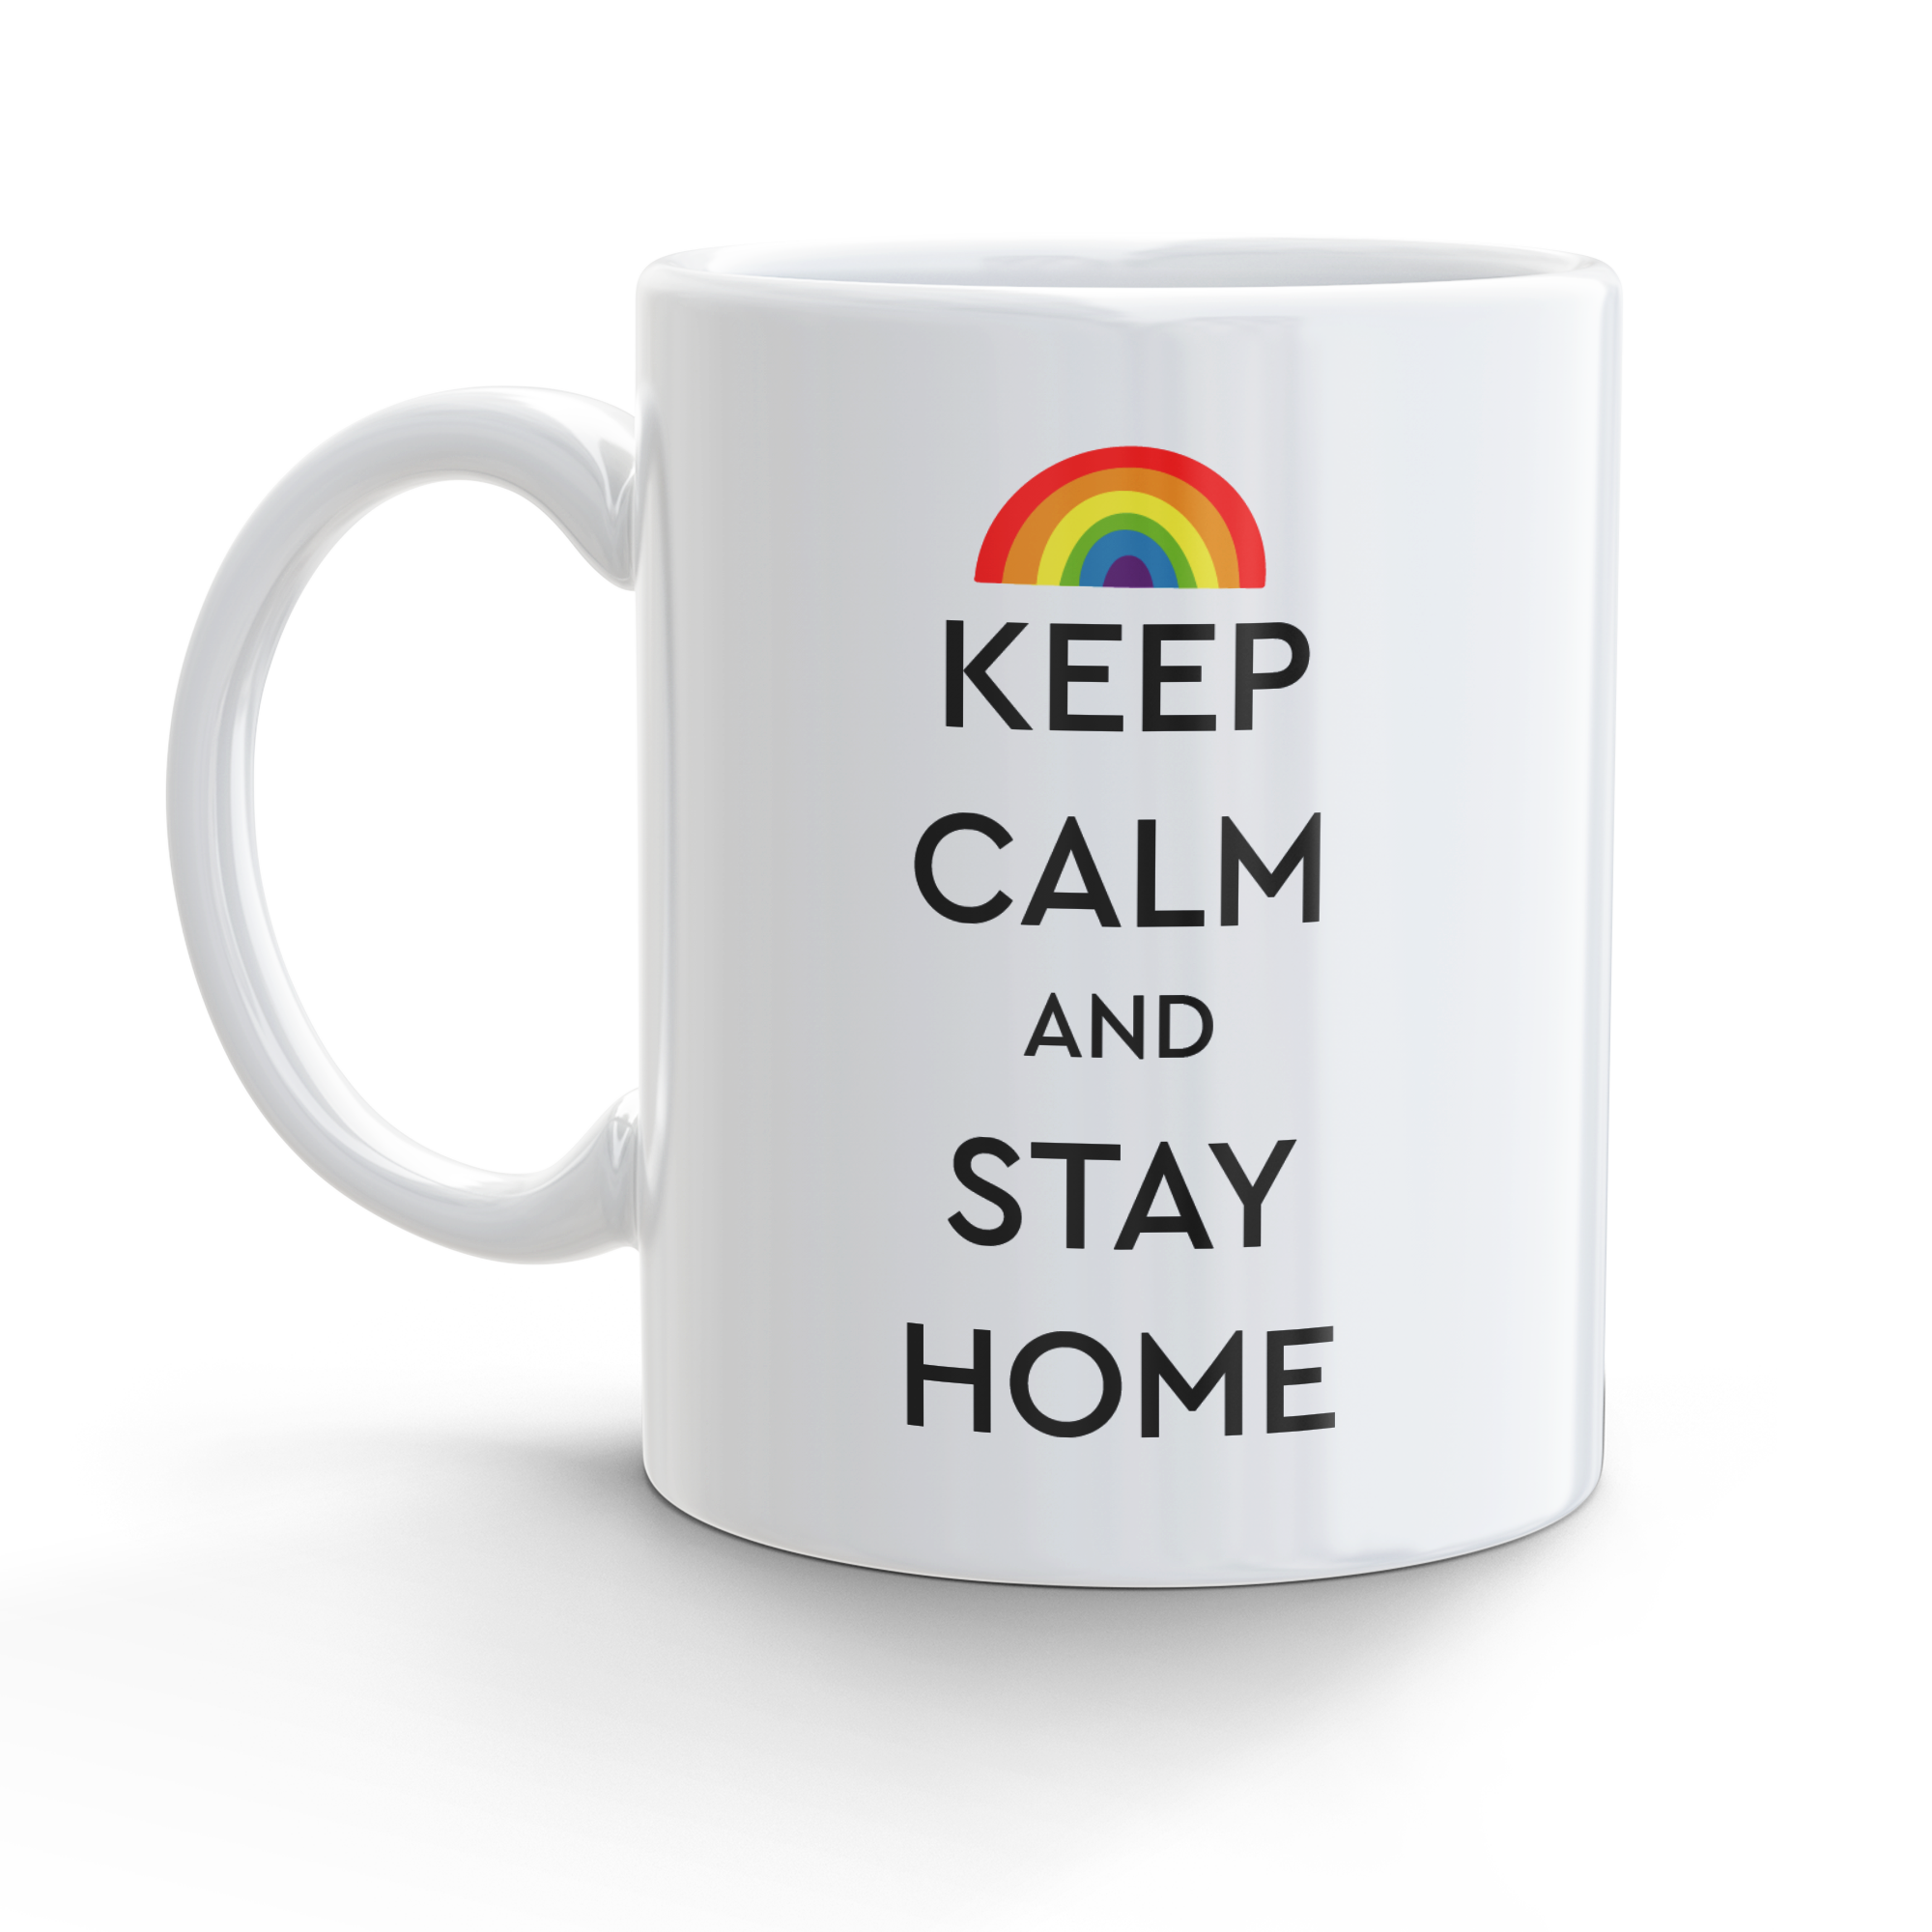 Tazza Keep calm Home